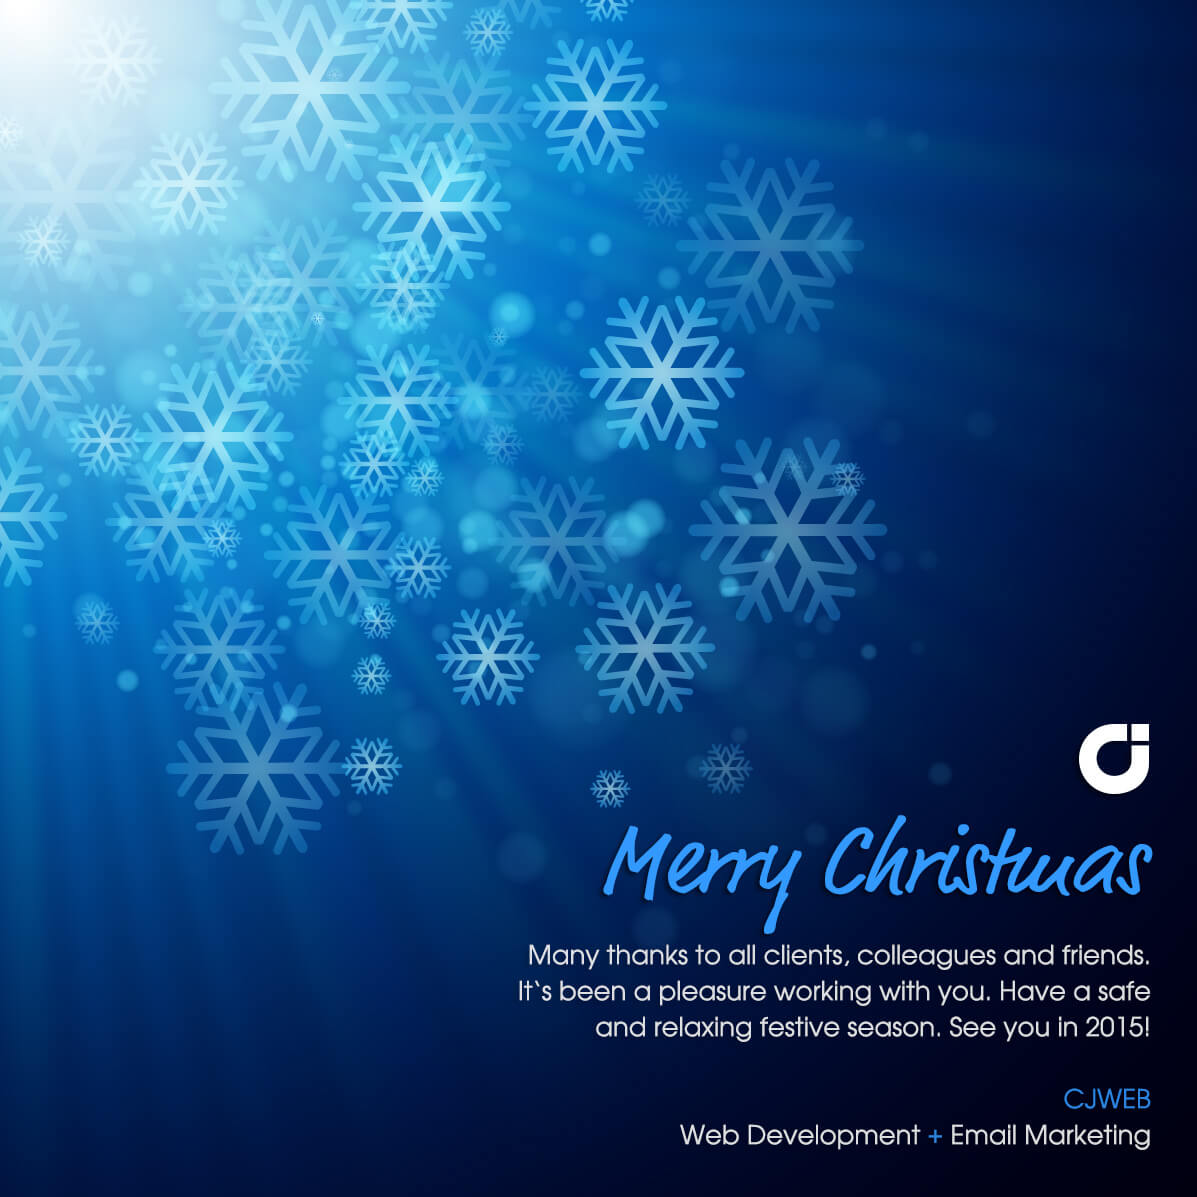 Merry Christmas from CJWEB